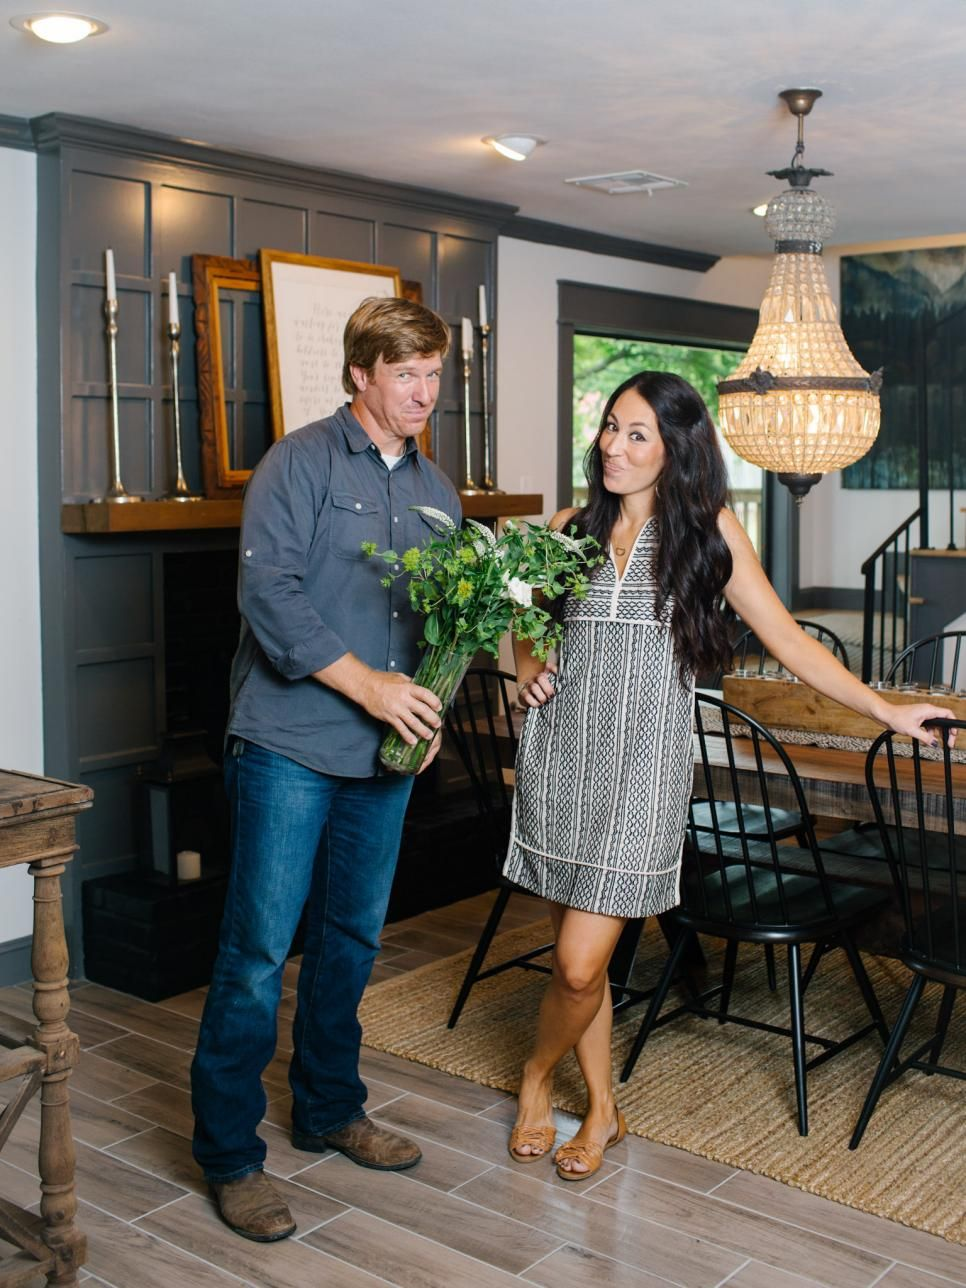 fixer upper old world charm for newlyweds hgtv fixer upper magnolia farms magnolia homes. Black Bedroom Furniture Sets. Home Design Ideas